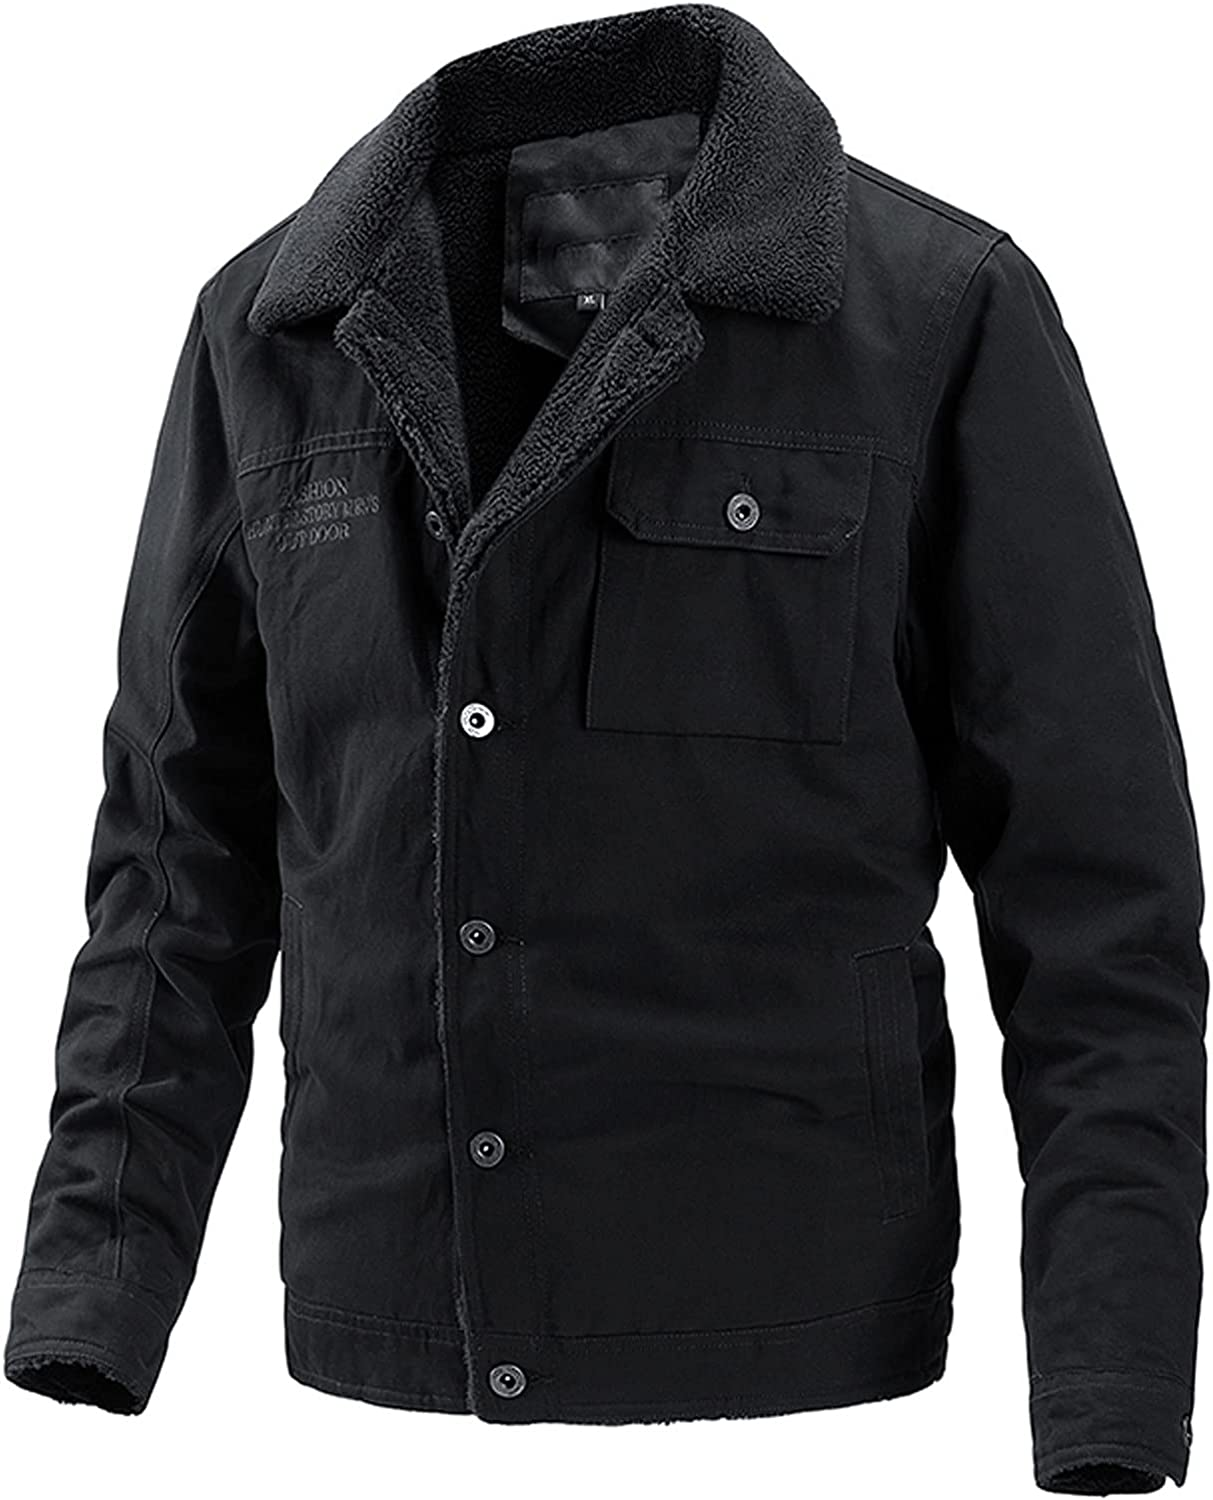 Men's Jackets Military Cargo Bomber Working Coat Single Breasted Outwear with Pockets Winter Warm Coats